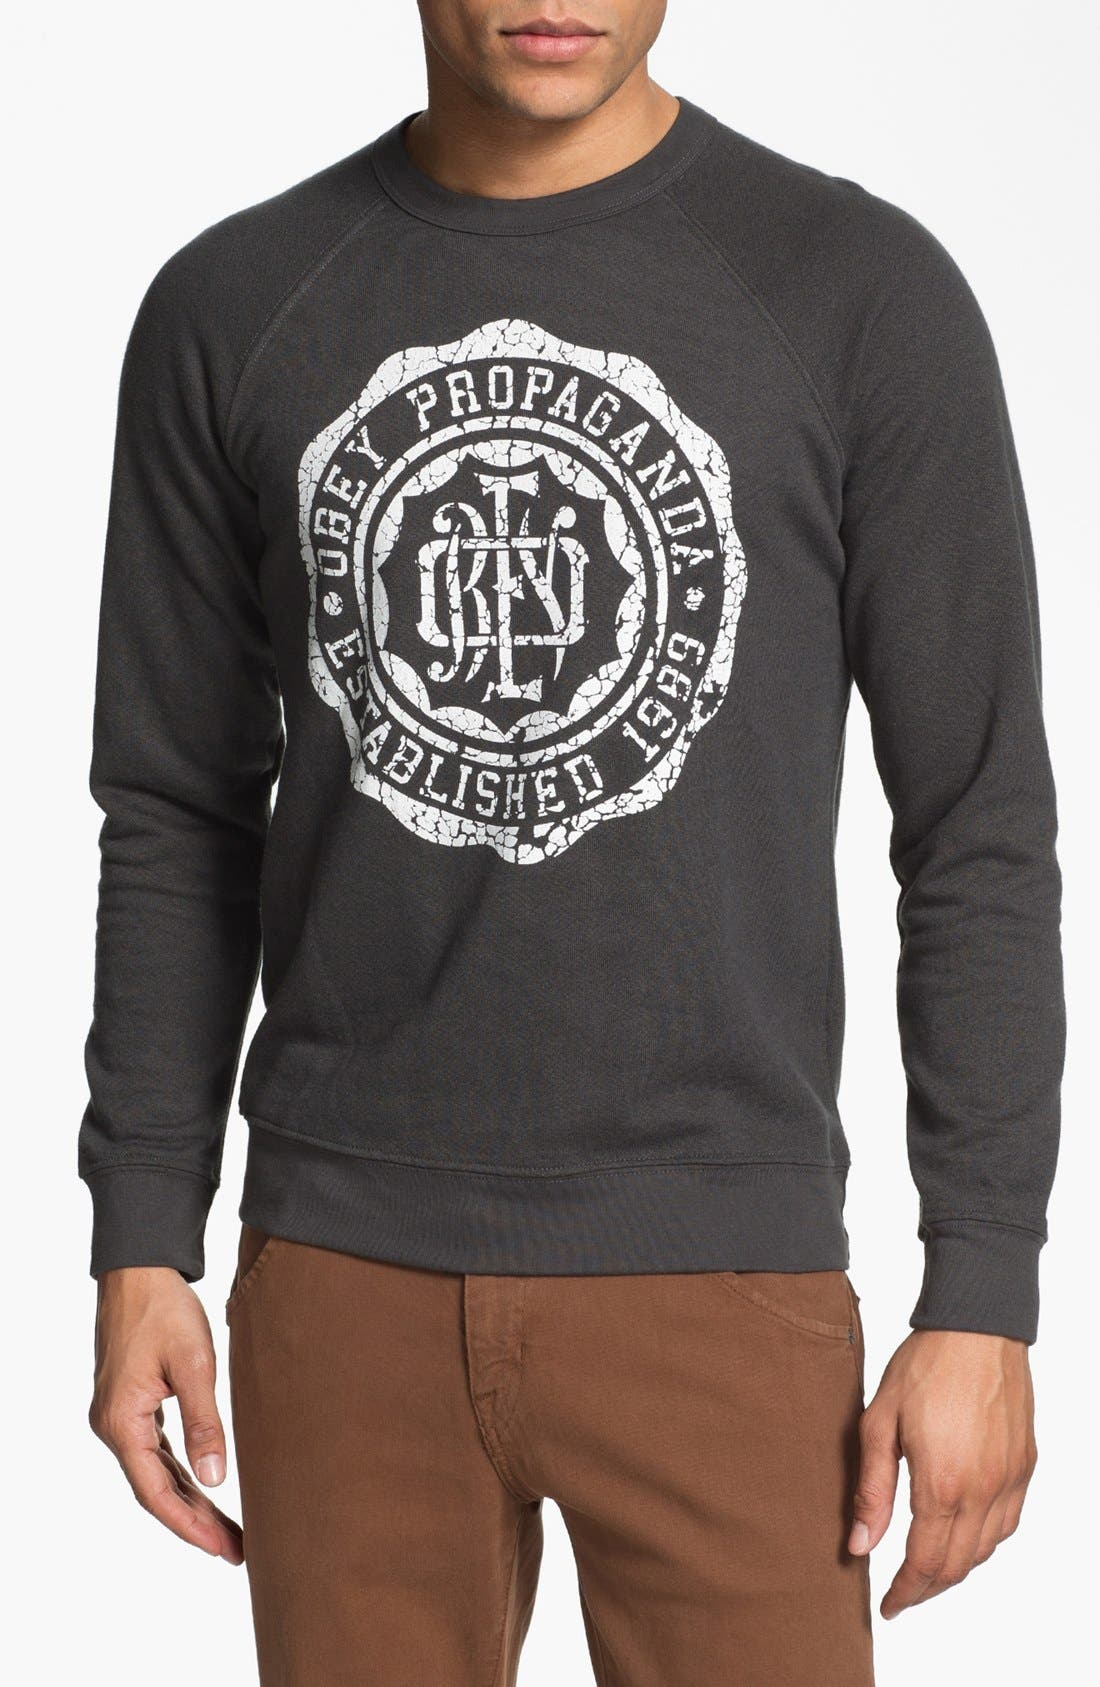 Main Image - Obey 'College Crest' Graphic Crewneck Sweatshirt.